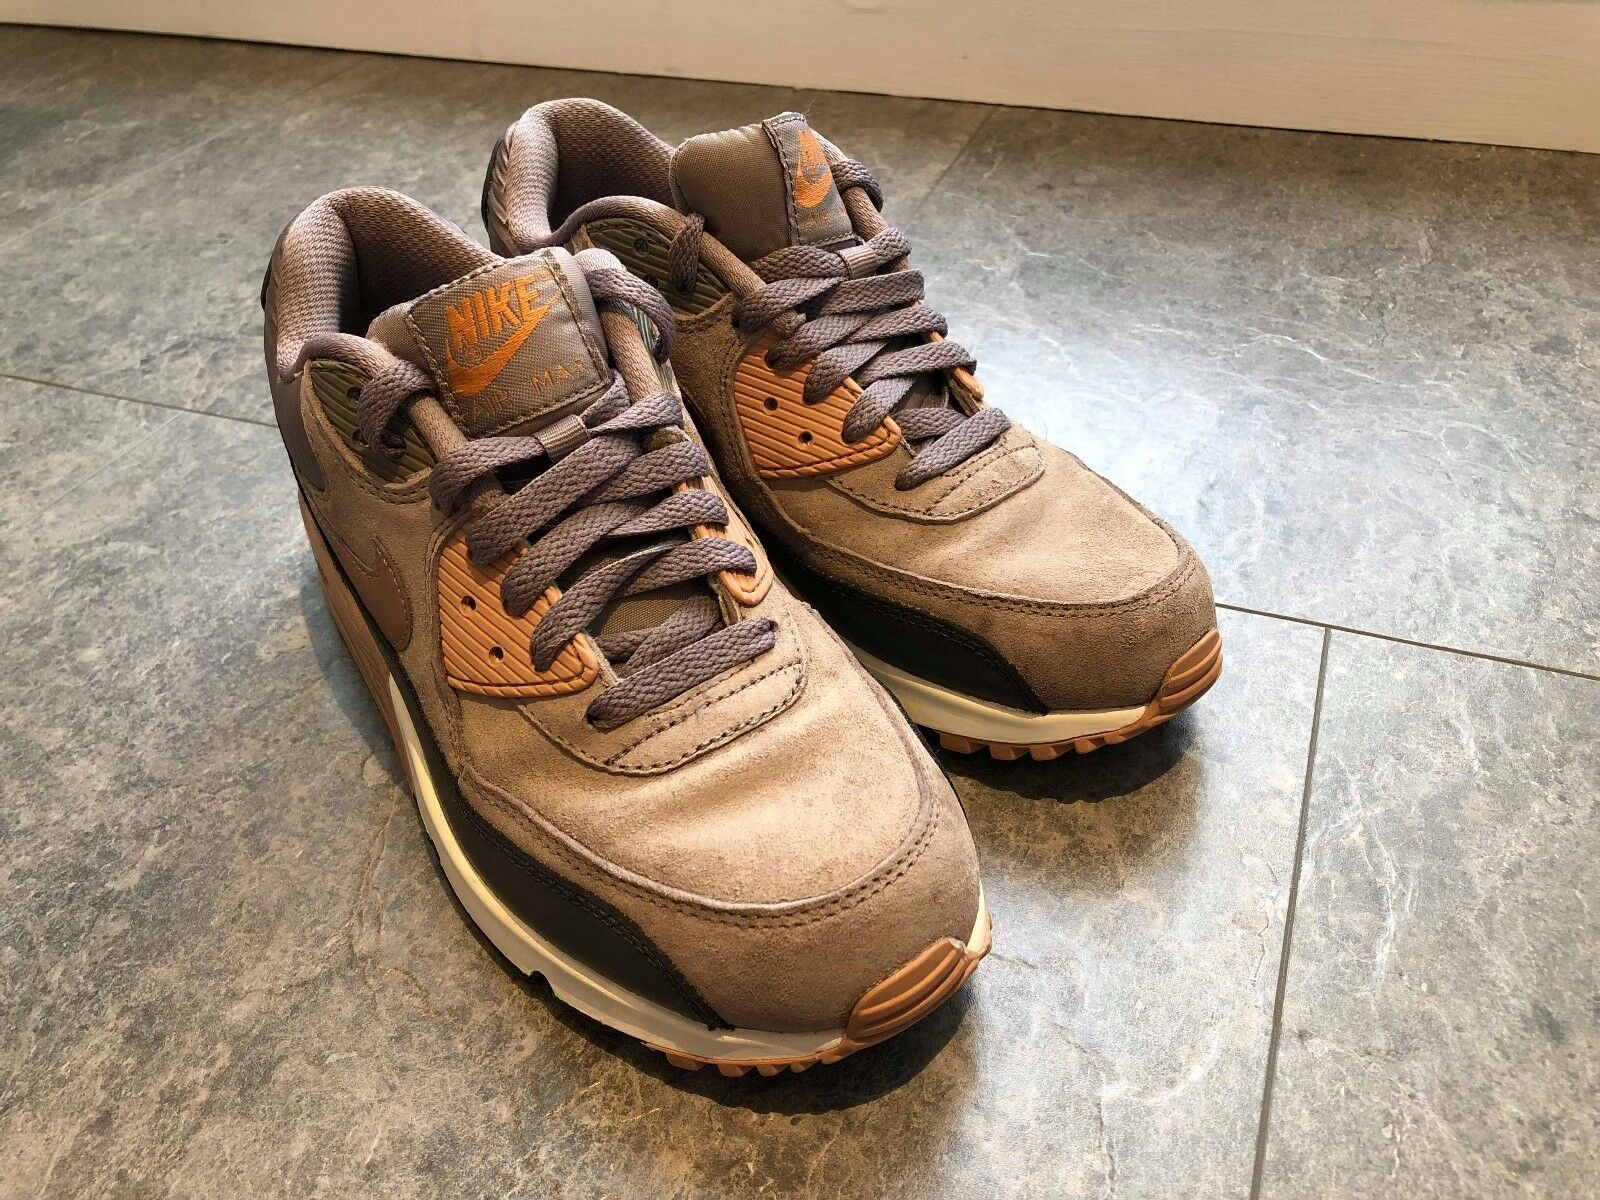 Wo Taille Hommes Nike Air Max Taille Wo uk 5 38 no box brown used Japan 206985